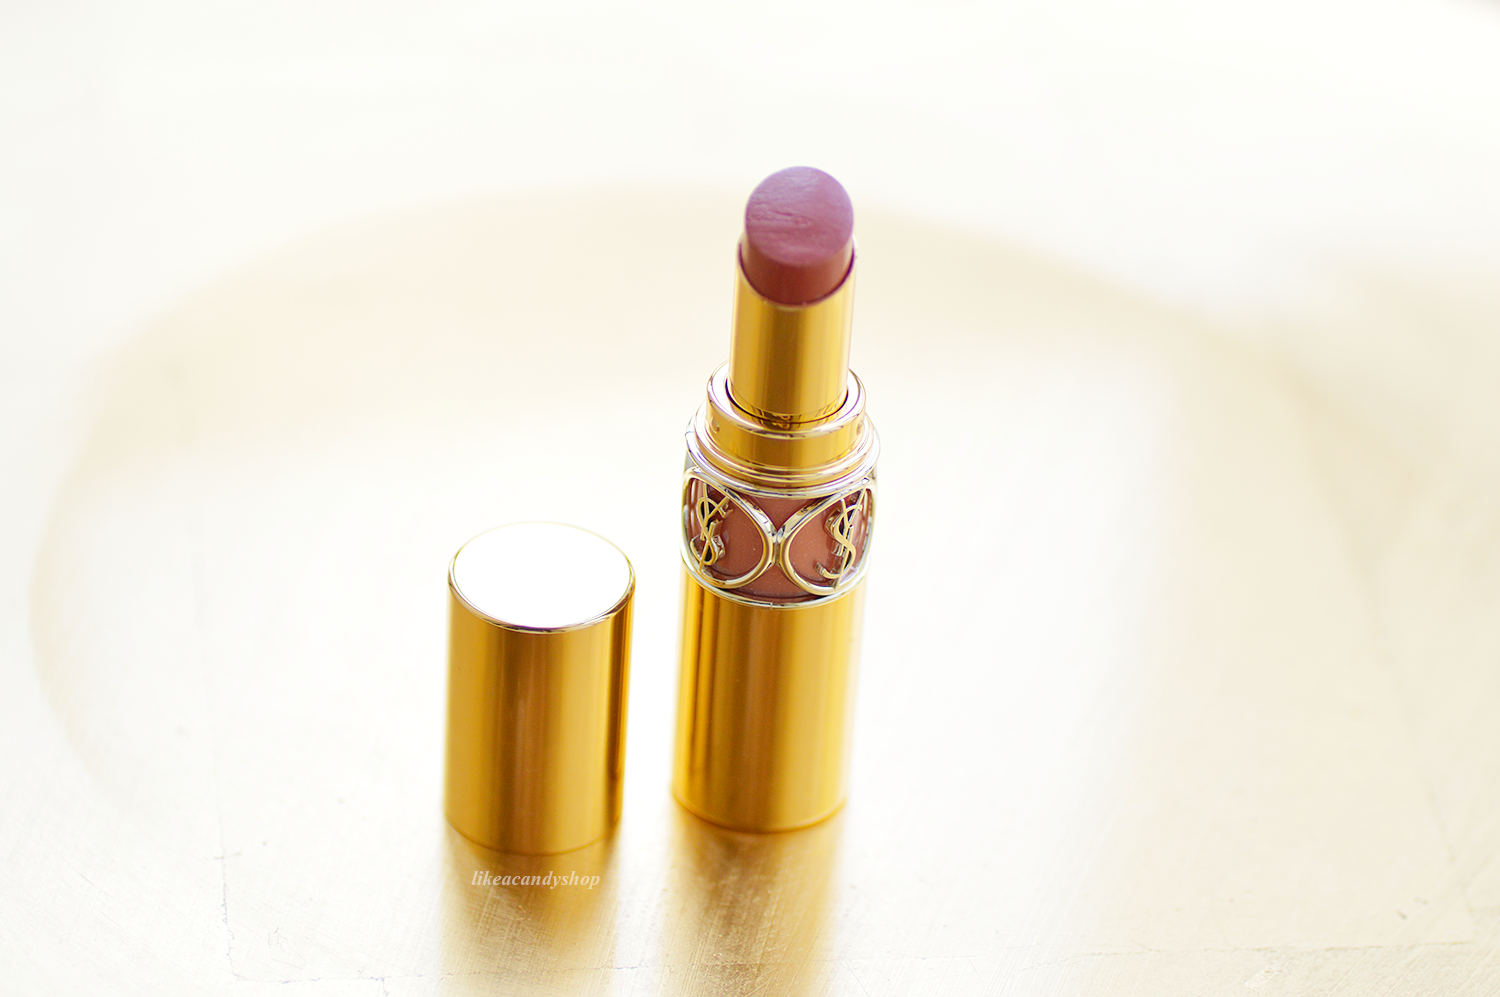 ysl nude in private lipstick